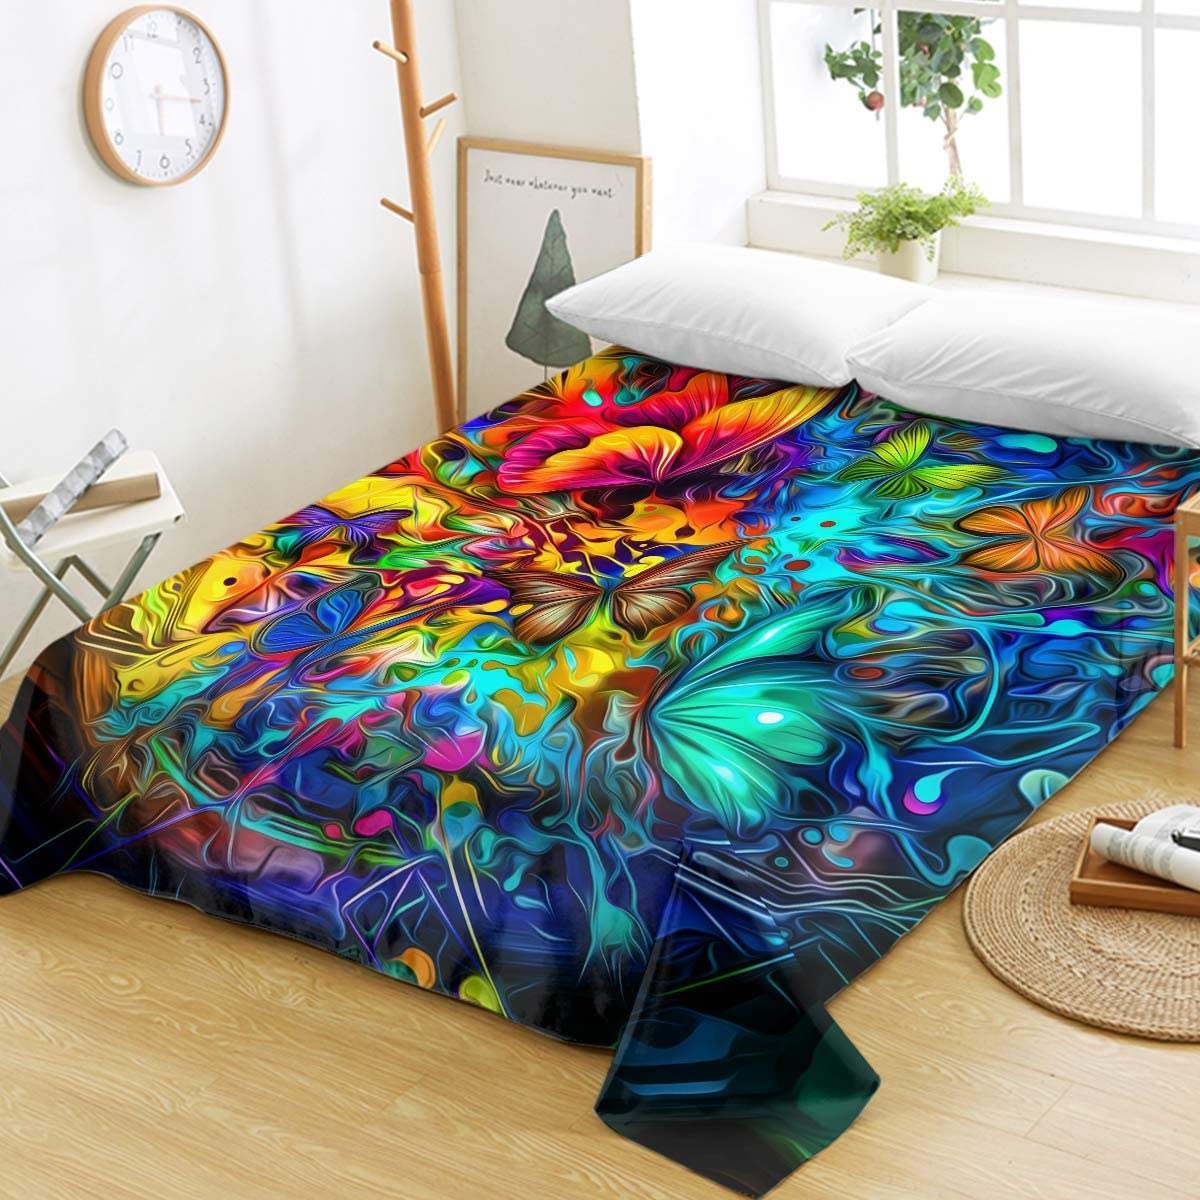 Manufacturer OFFicial shop Sleepwish Bedding Flat A surprise price is realized Sheet Abstract Fantasy Colorful Butterfly